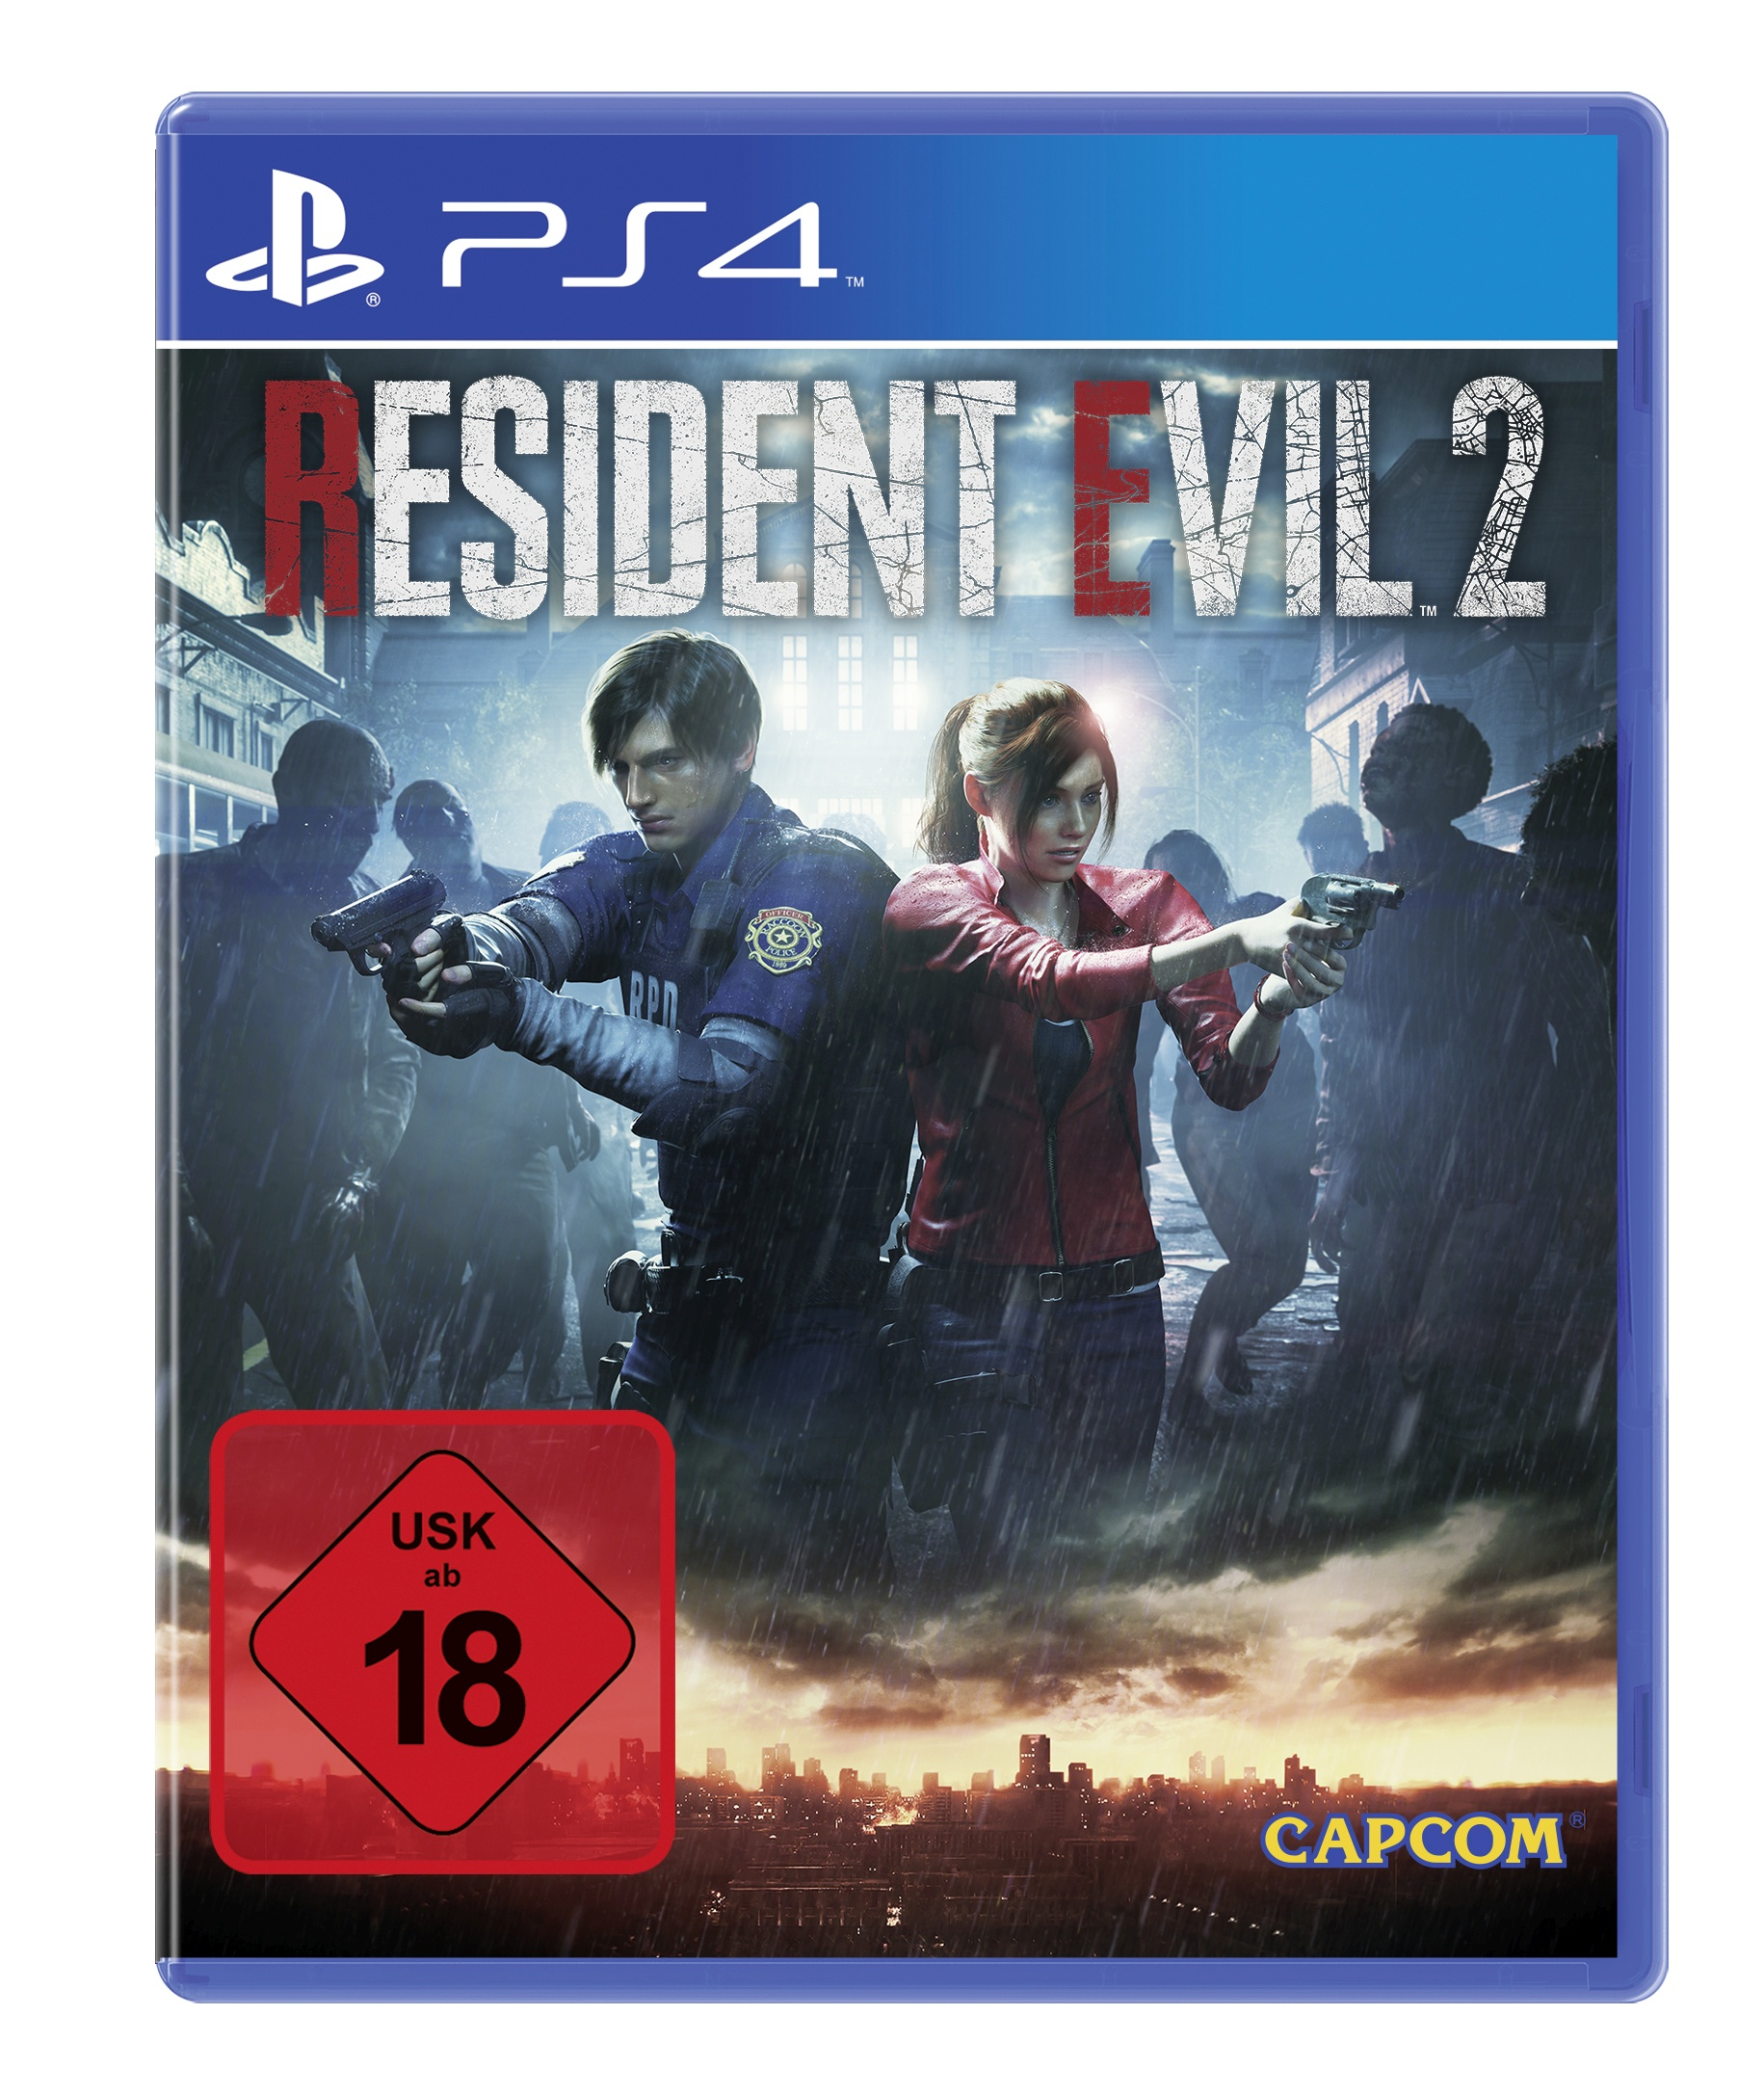 RE2_PS4_LAYERED_2D_PACKSHOT_USK_NEW